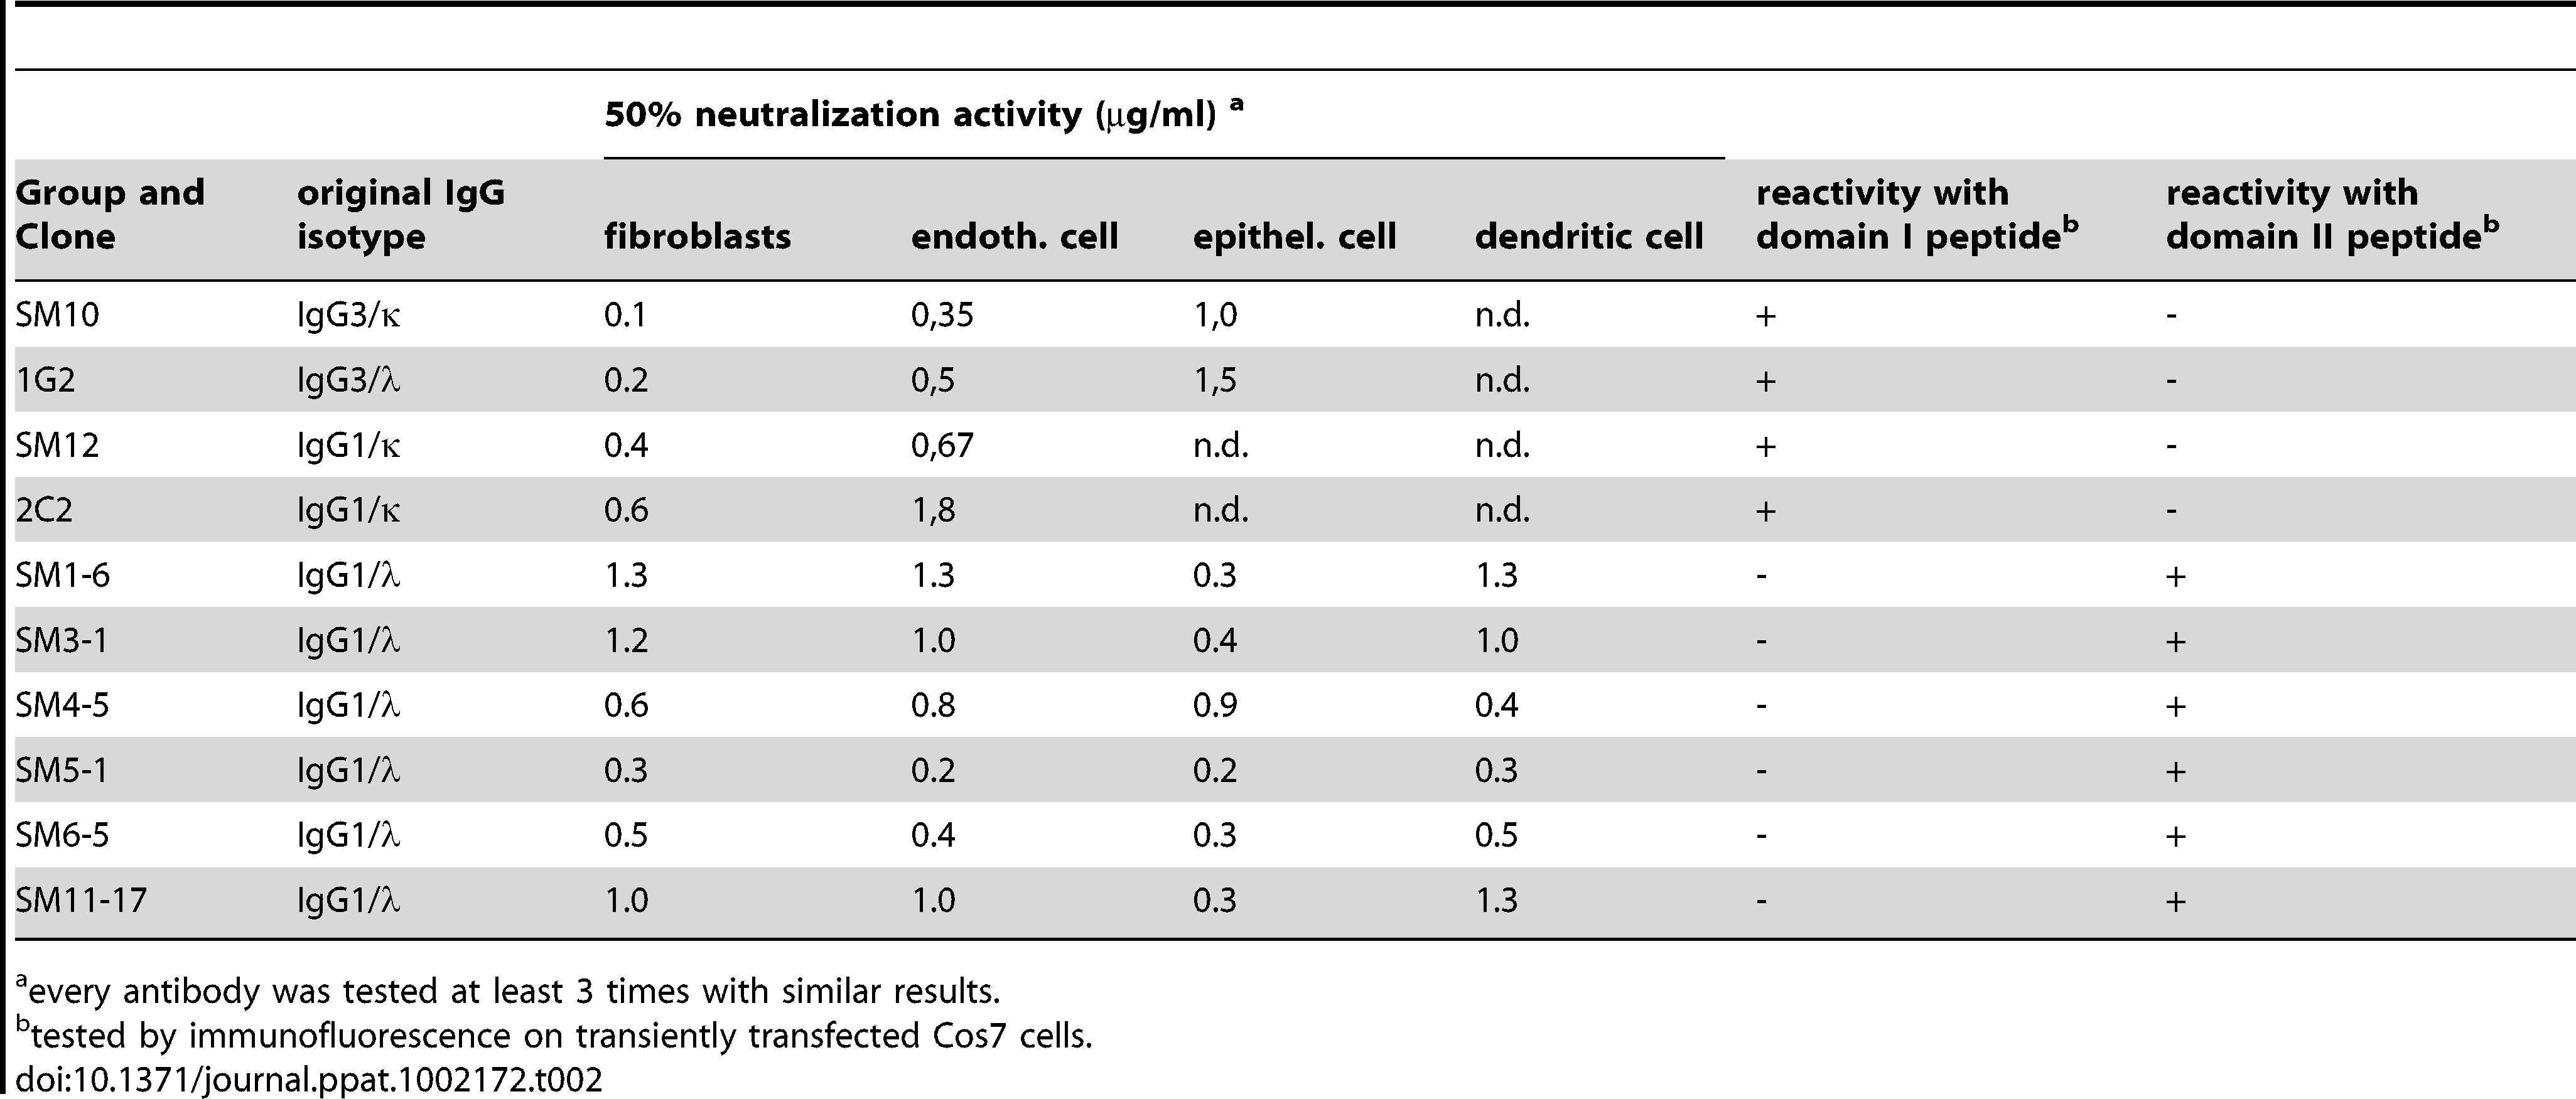 Neutralization capacity and reactivity pattern of recombinantly expressed human monoclonal antibodies.